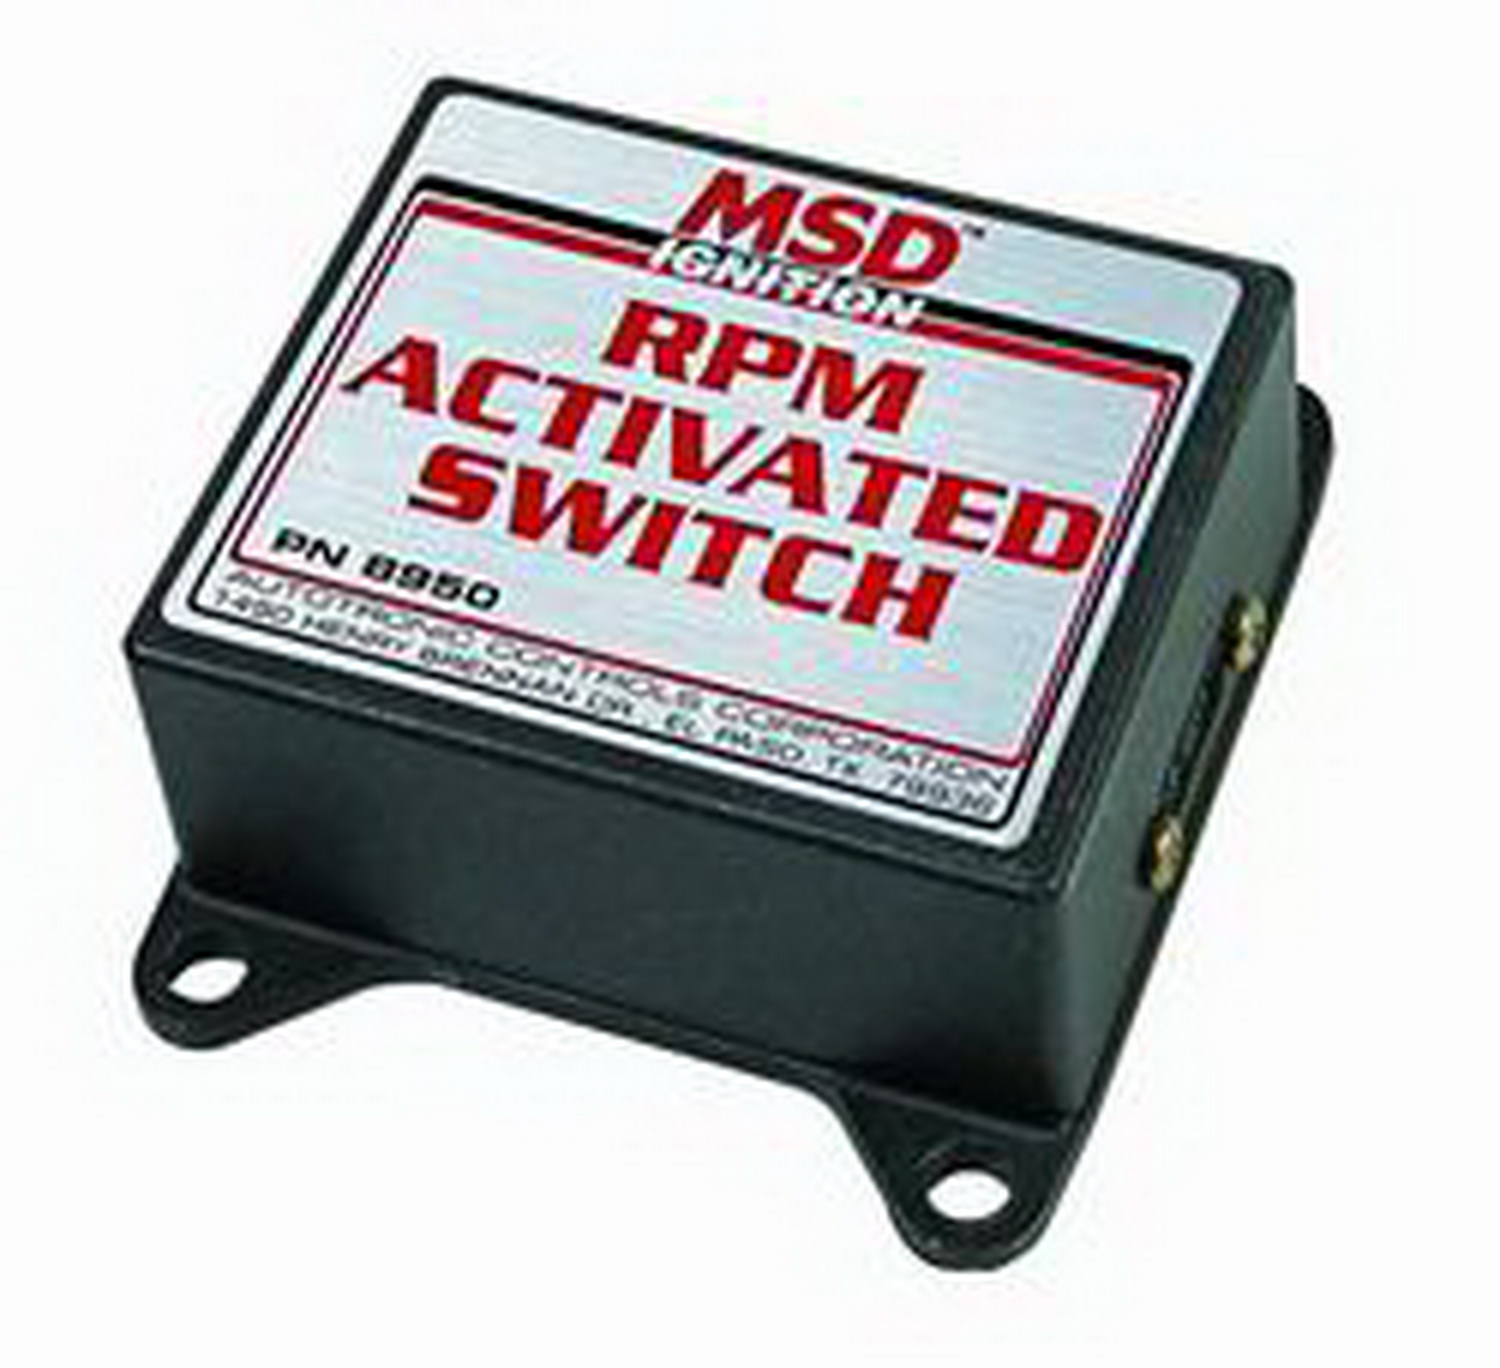 MSD Performance 8950 RPM Activated Switch